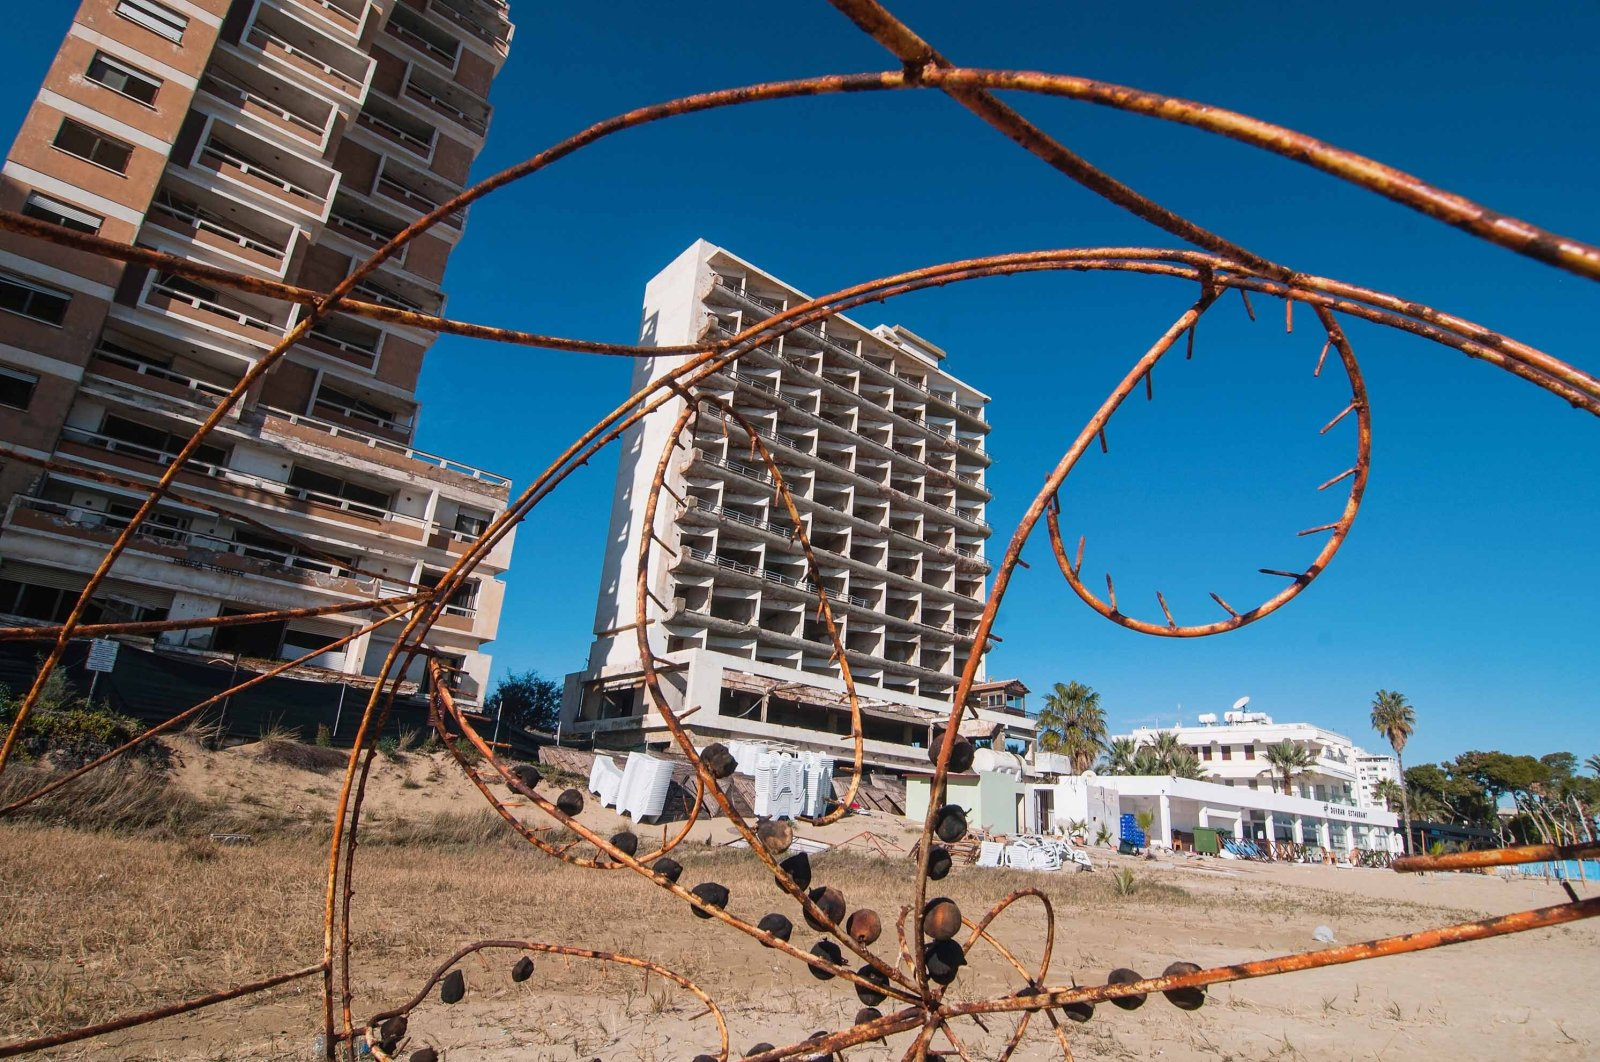 An abandoned hotel is seen in the Varosha quarter of the beach on Jan. 5, 2017 in the Turkish Republic of Northern Cyprus.  (Getty Images File Photo)